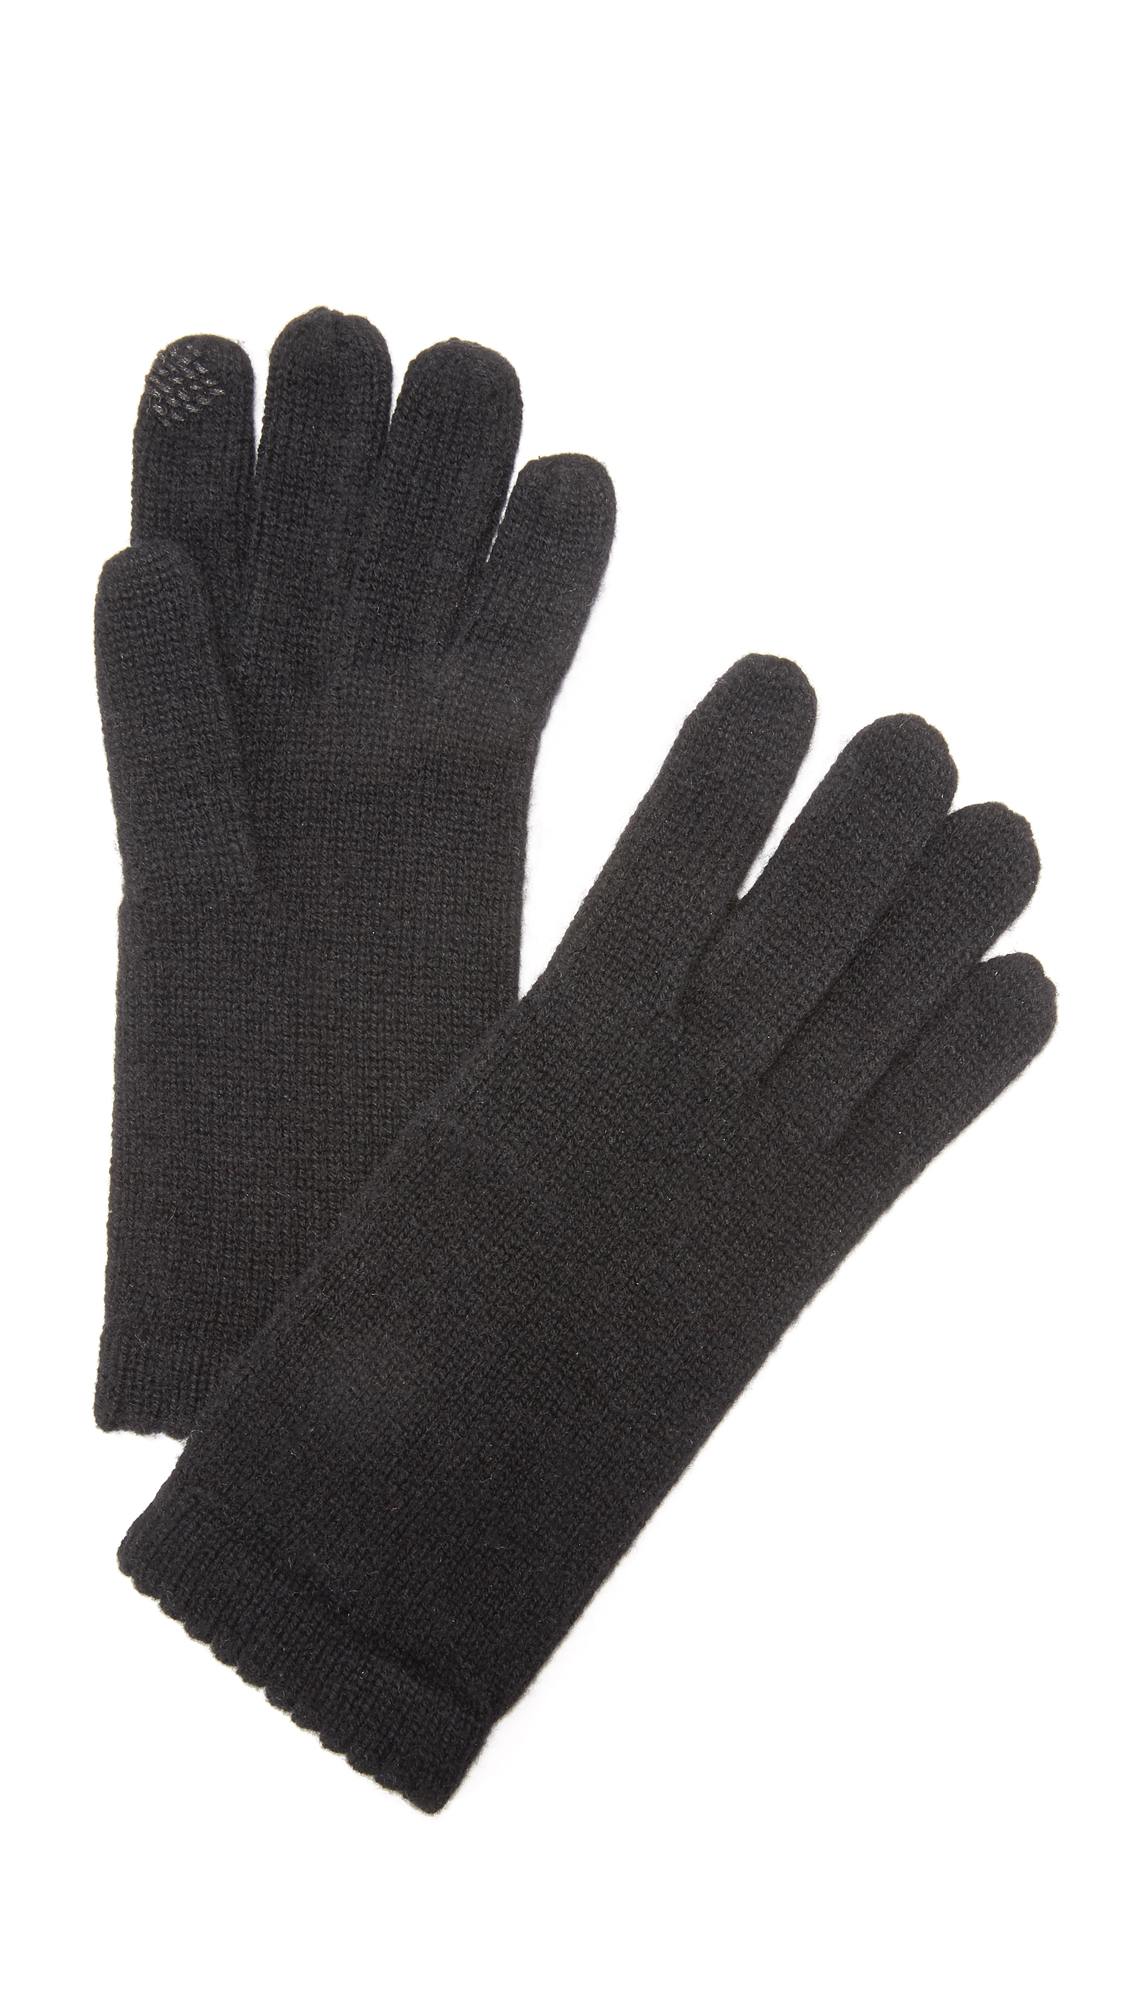 Carolina Amato Texting Gloves - Black